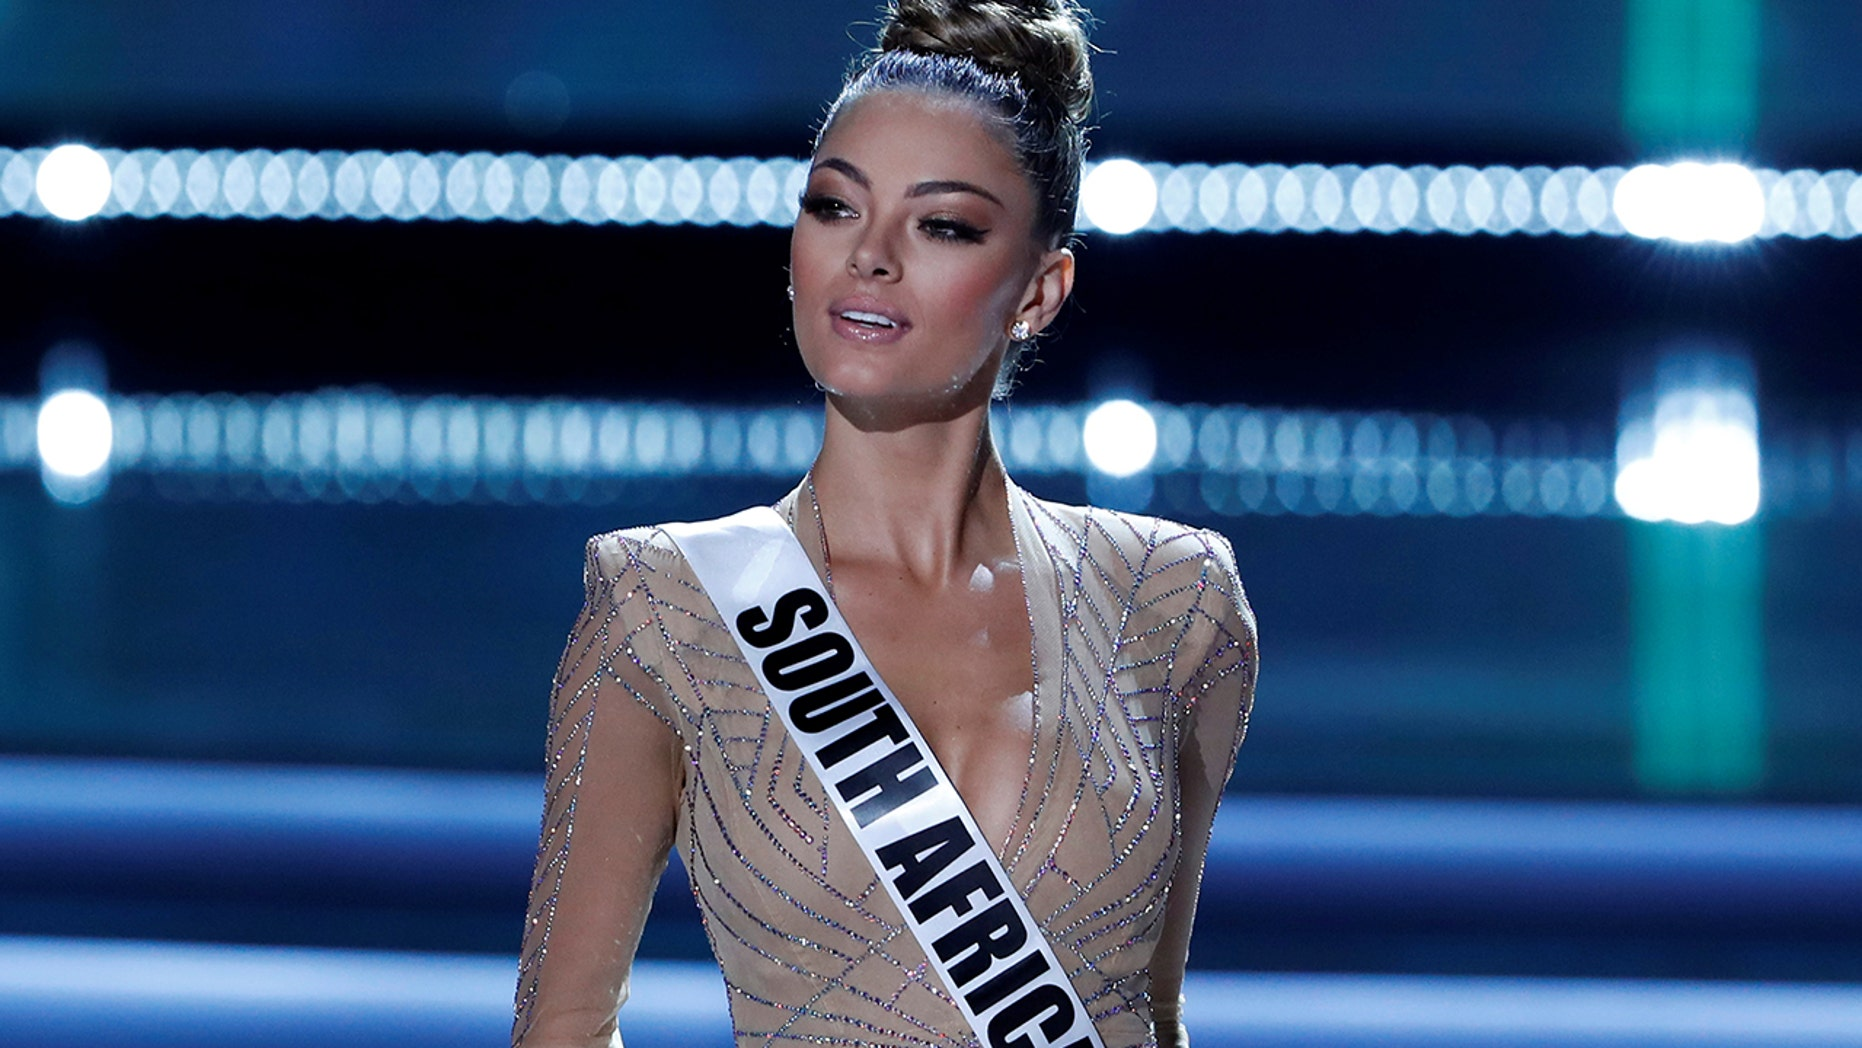 Miss South Africa Demi-Leigh Nel-Peters won the 66th Miss Universe pageant in November 2017.